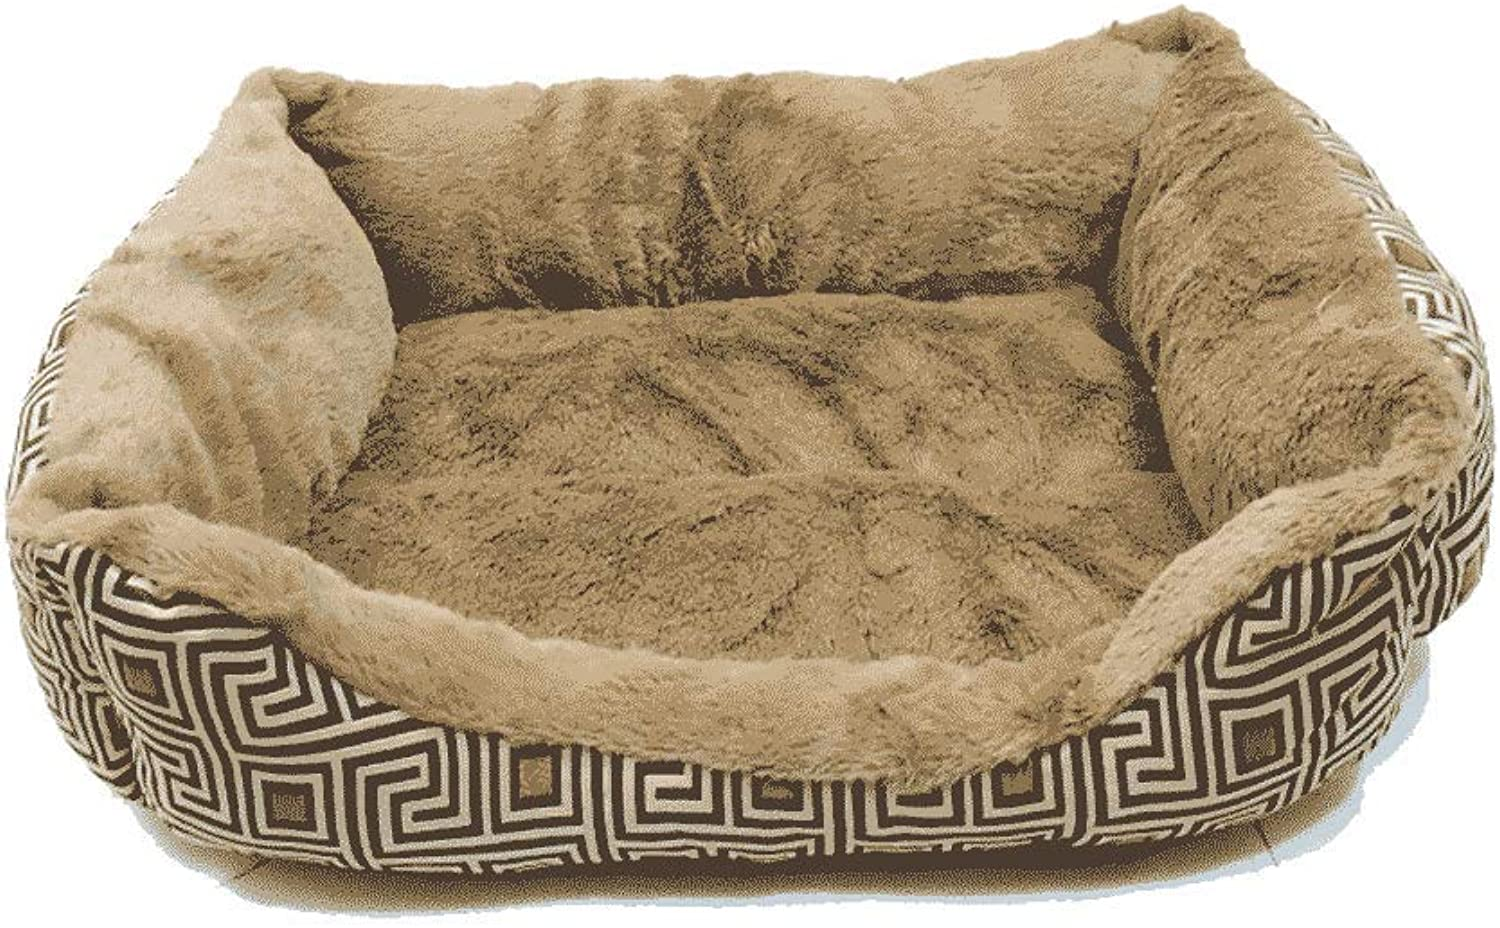 FJH Kennel Dog House Washable Cat Litter Teddy Pet Nest Dog Pad Small Dog Puppies Dog Bed Pet Supplies Four Seasons